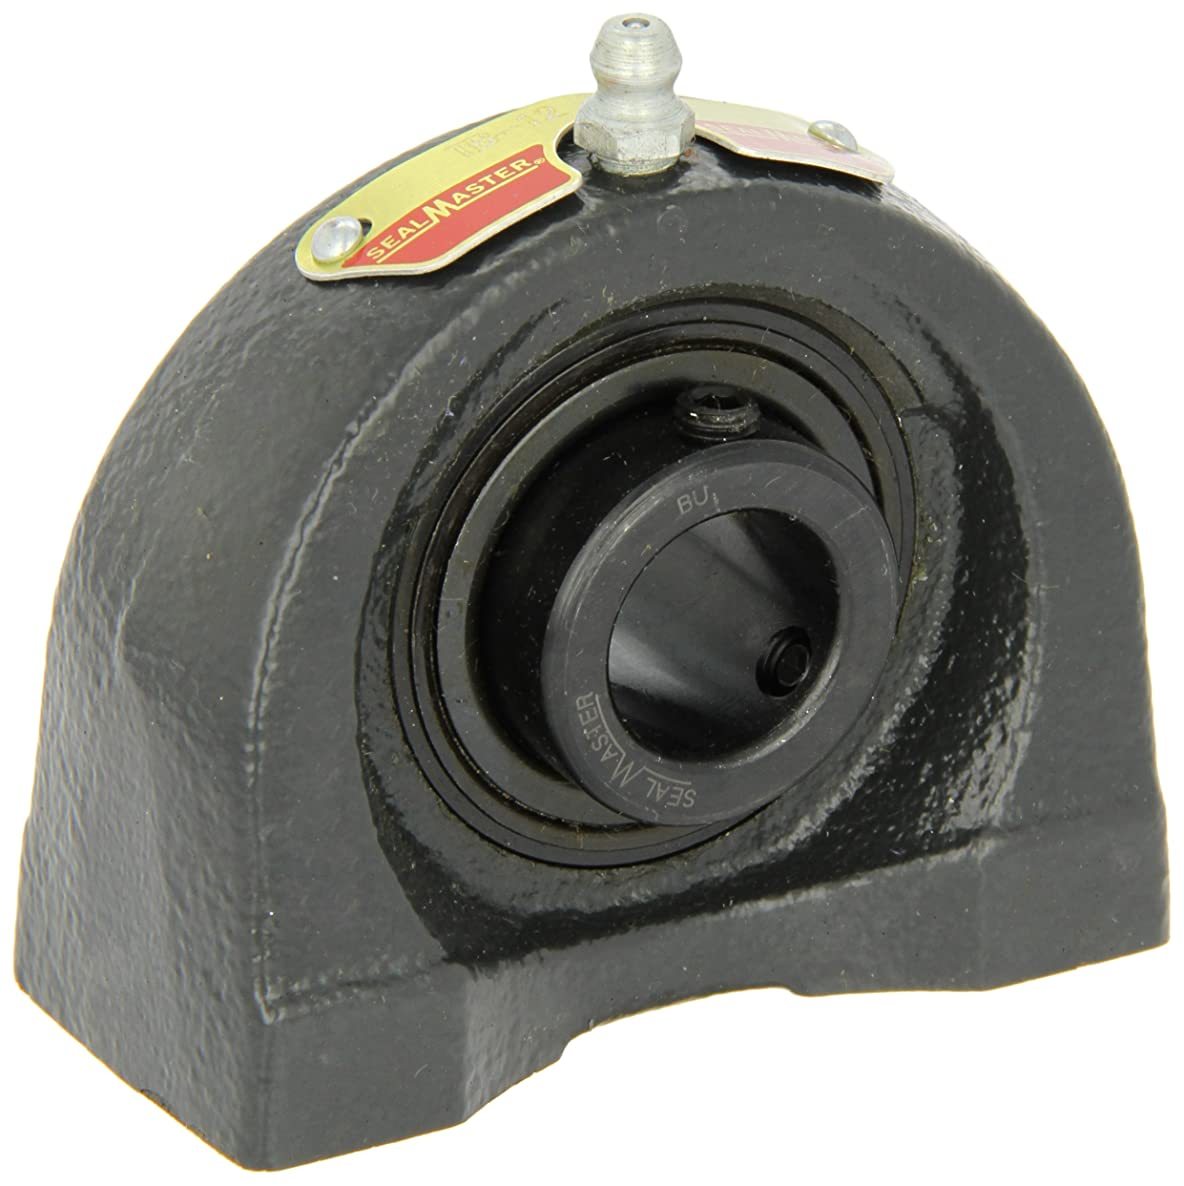 Sealmaster TB-29 Tapped Base Pillow Block Ball Bearing, Non-Expansion Type, Normal-Duty, Regreasable, Setscrew Locking Collar, Felt Seals, Cast Iron Housing, 1-13/16